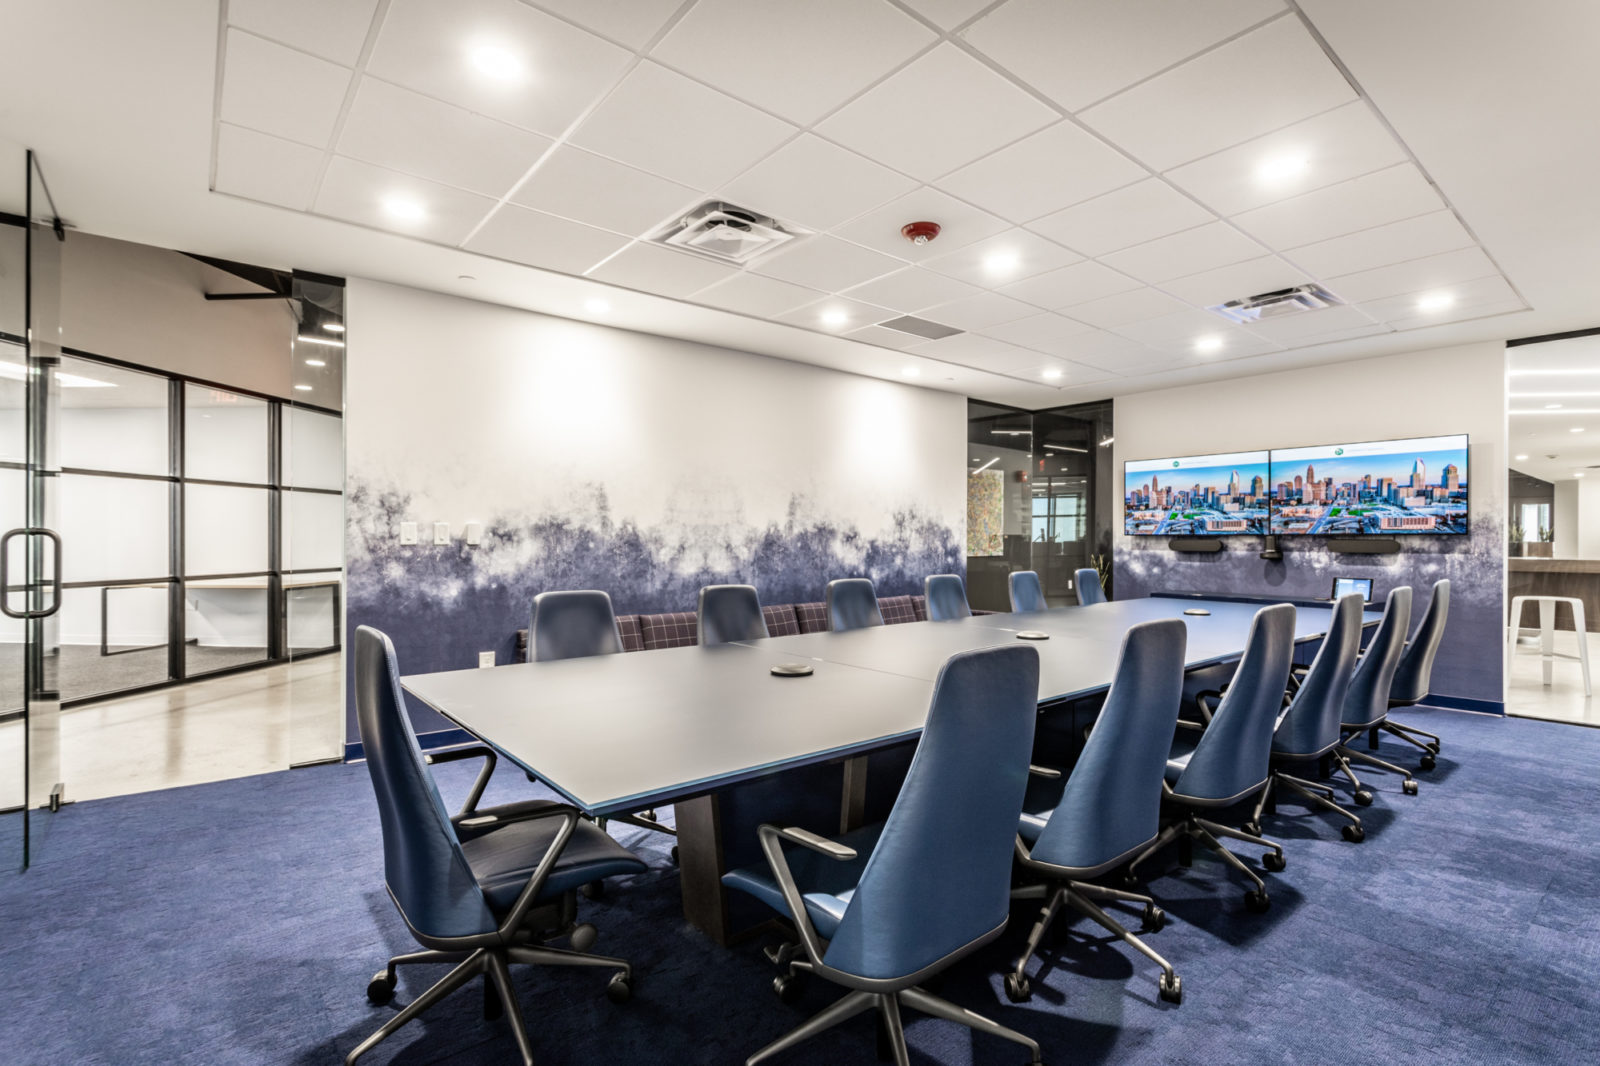 Prolific conference room